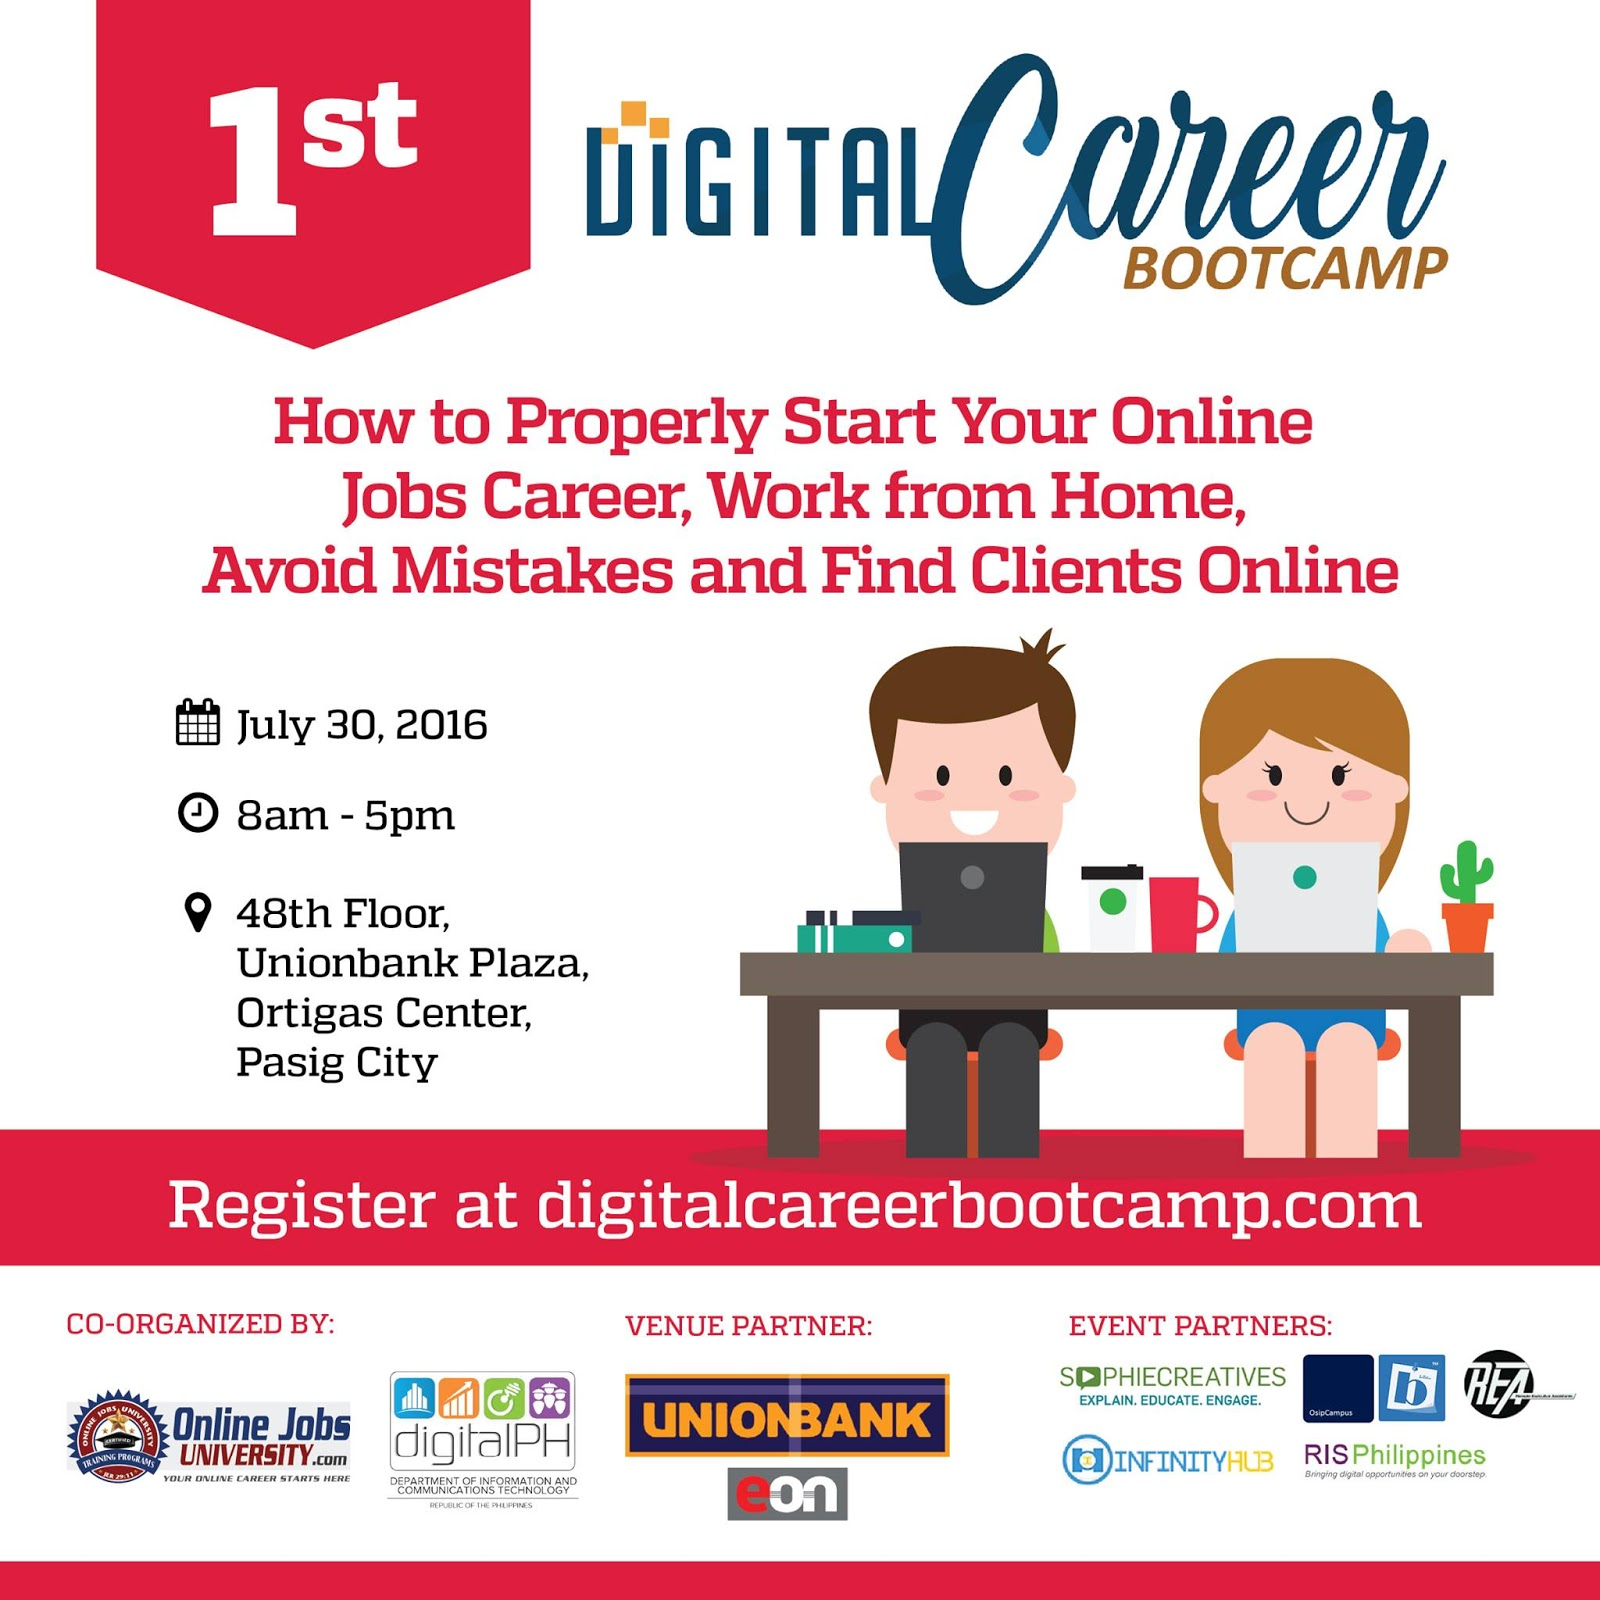 DICT co organize 1st Digital Career Bootcamp to promote online